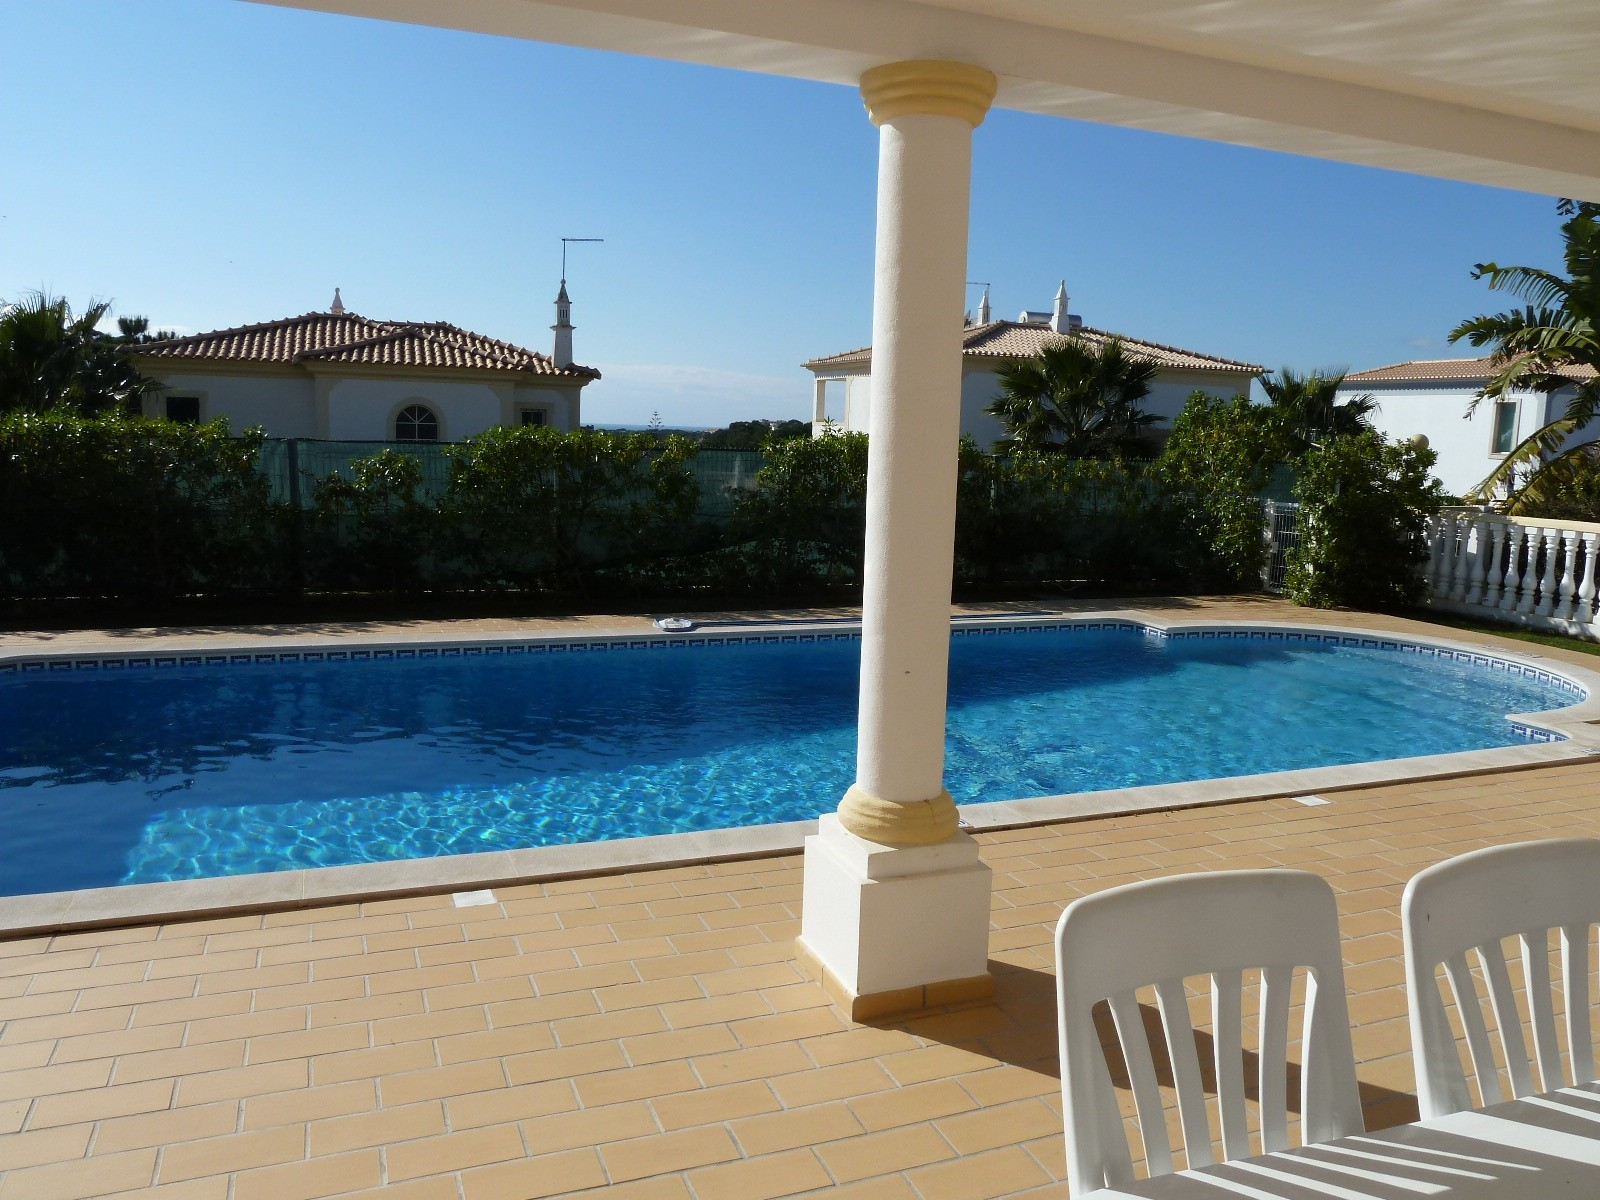 Estrelicia's sunny, south facing pool & sea views!